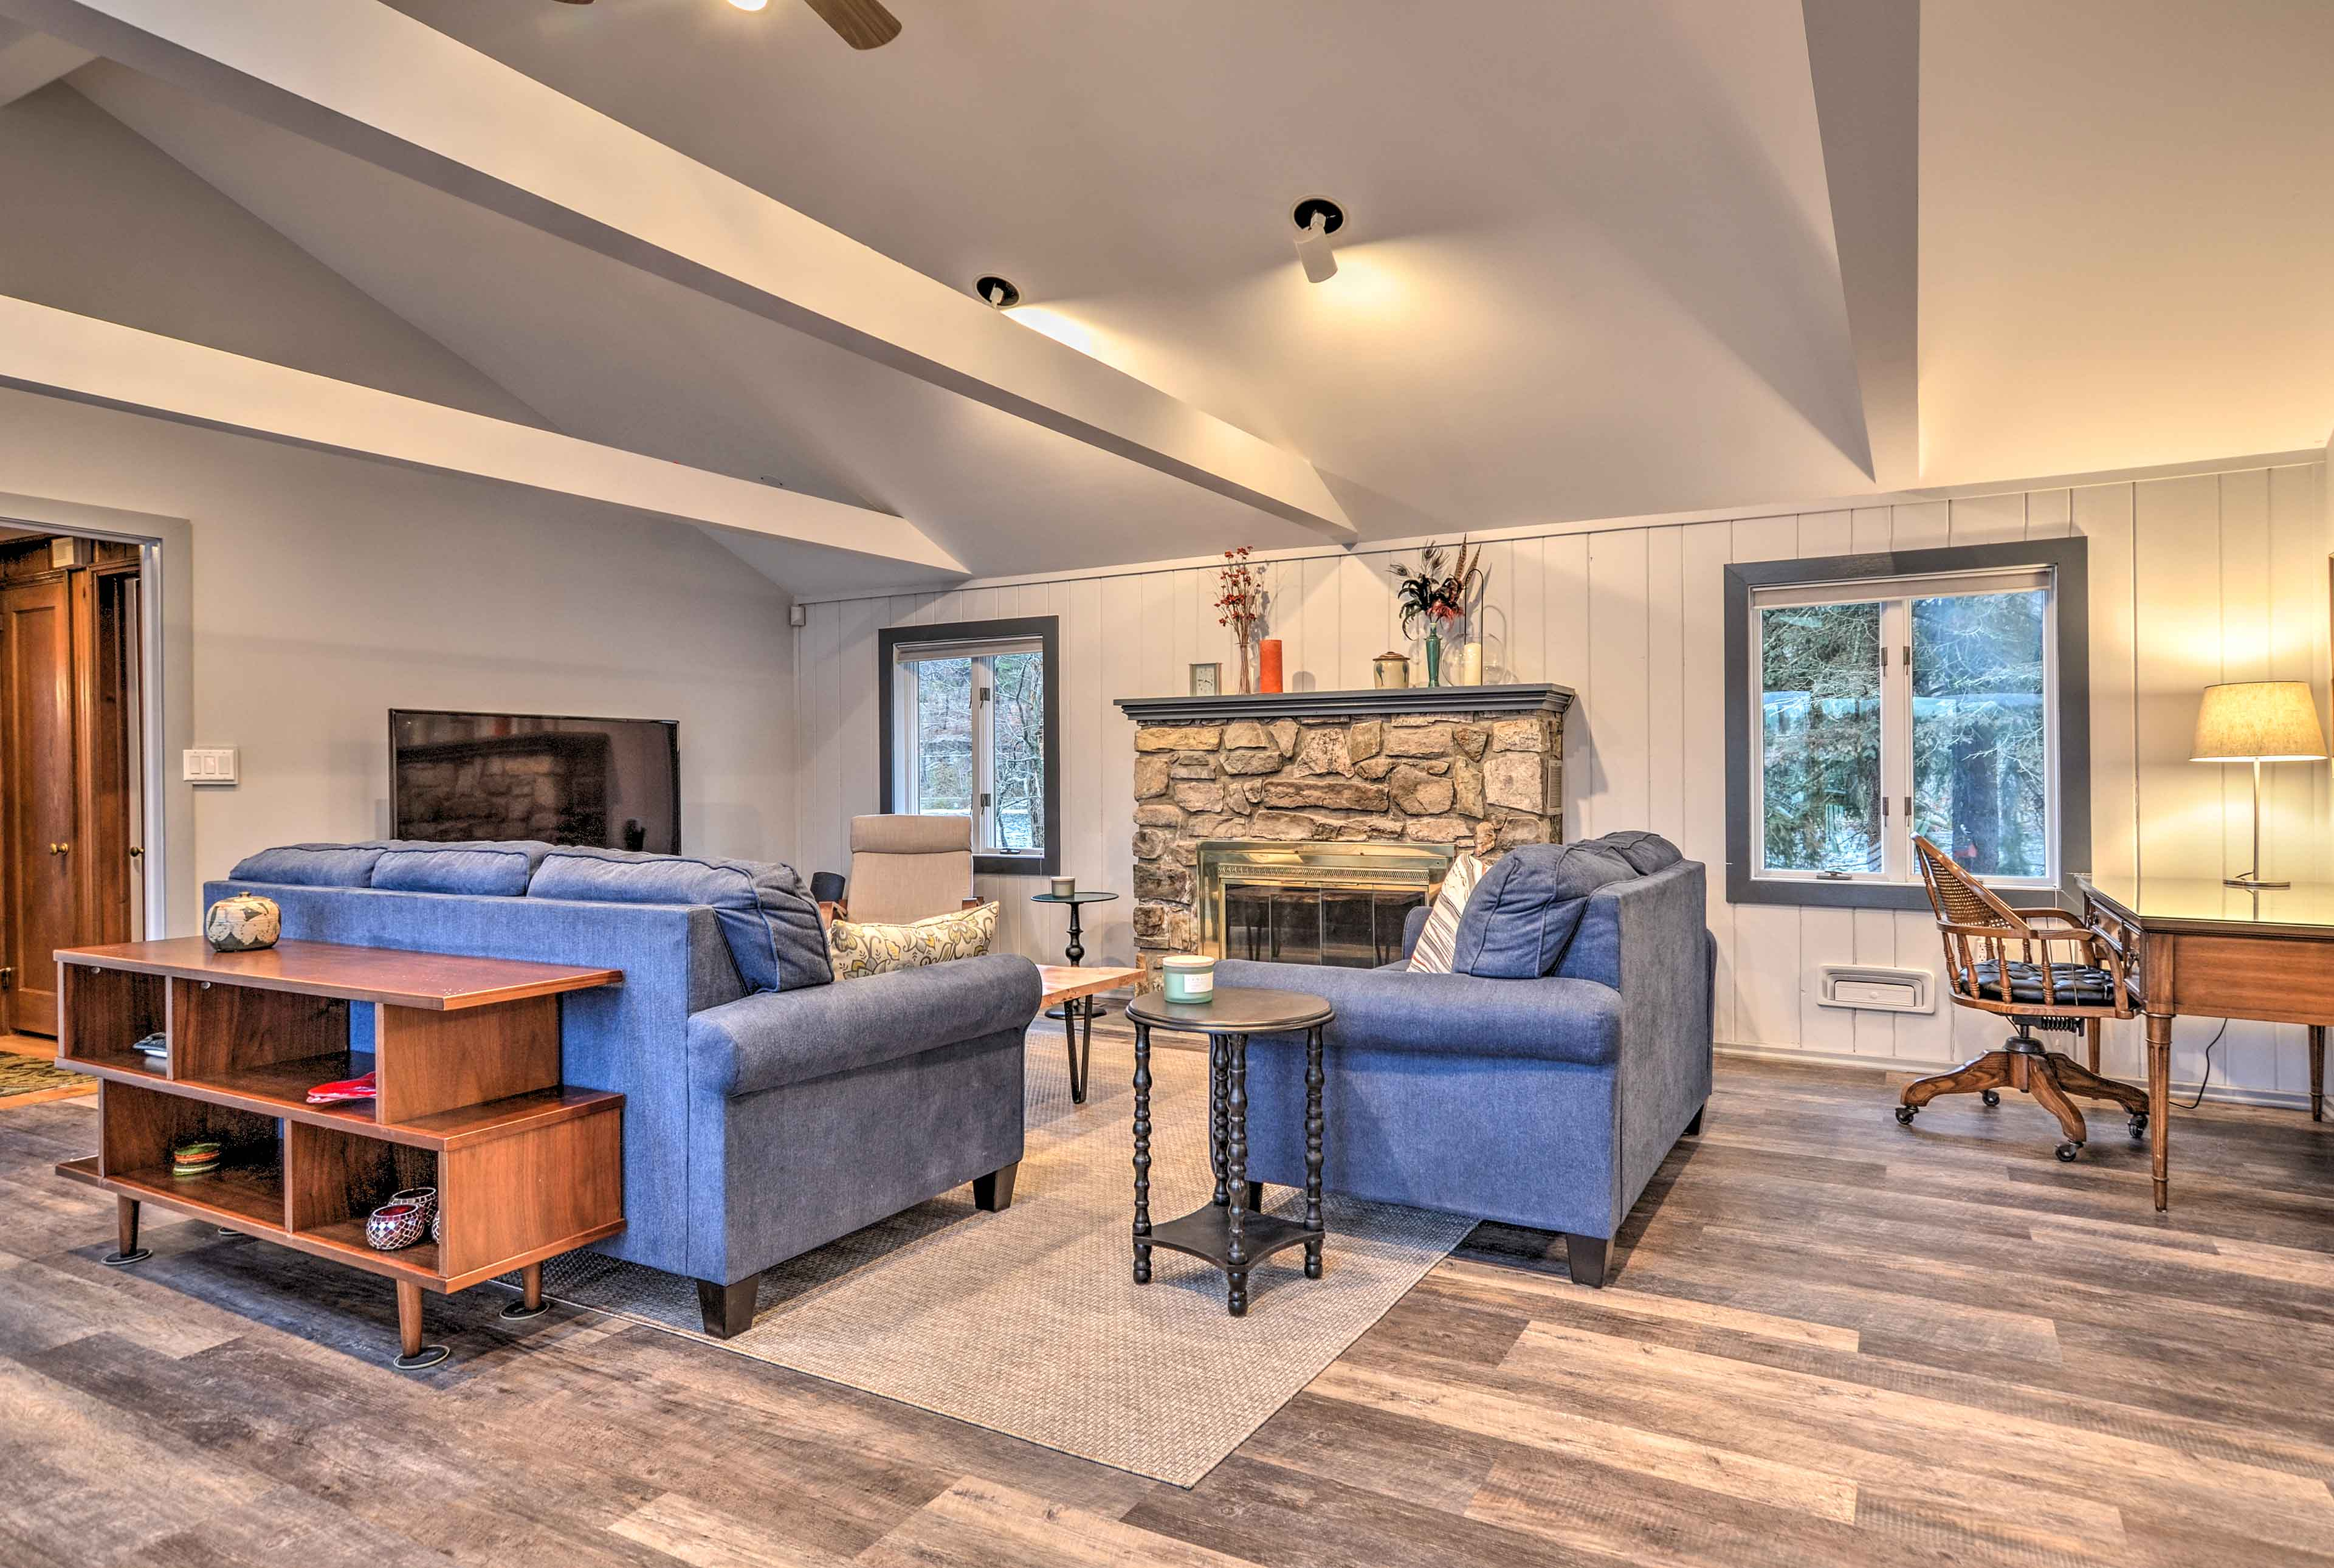 The living room features comfortable furnishings and a flat-screen TV w/ Dish.